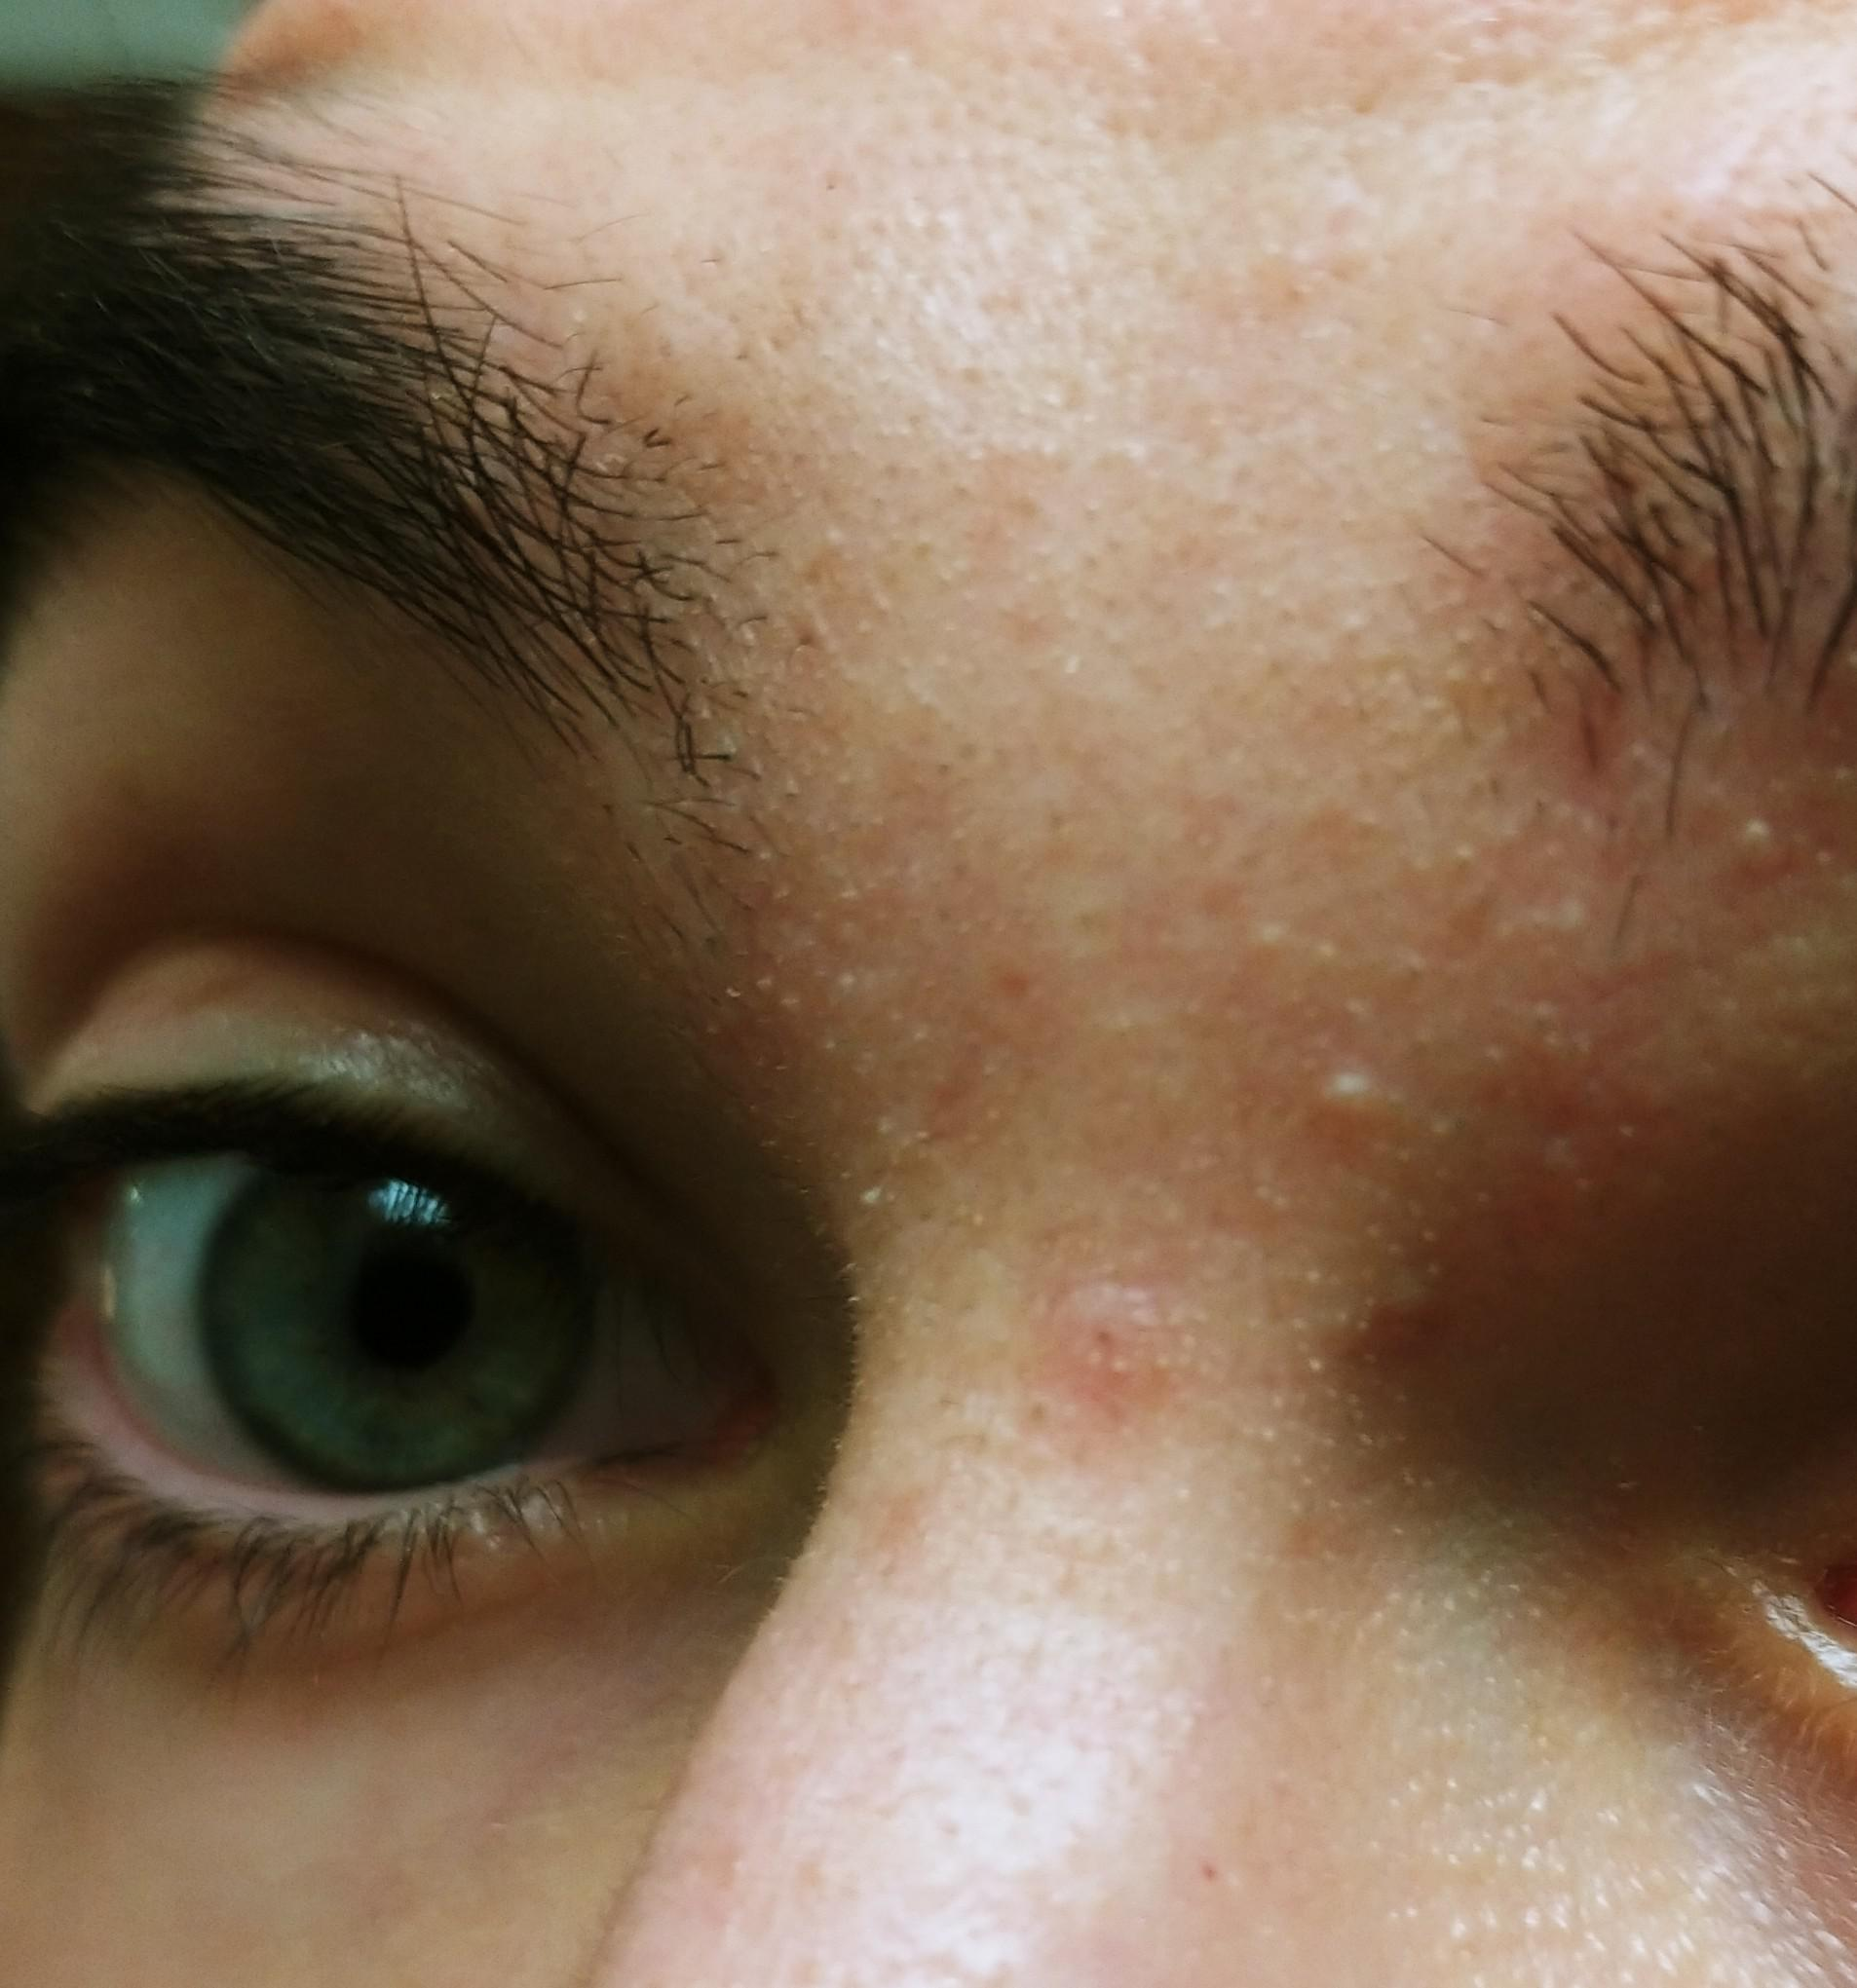 [Skin Concern] Every couple of weeks I get small whiteheads/spots around my brow area. What could help this troubled area?